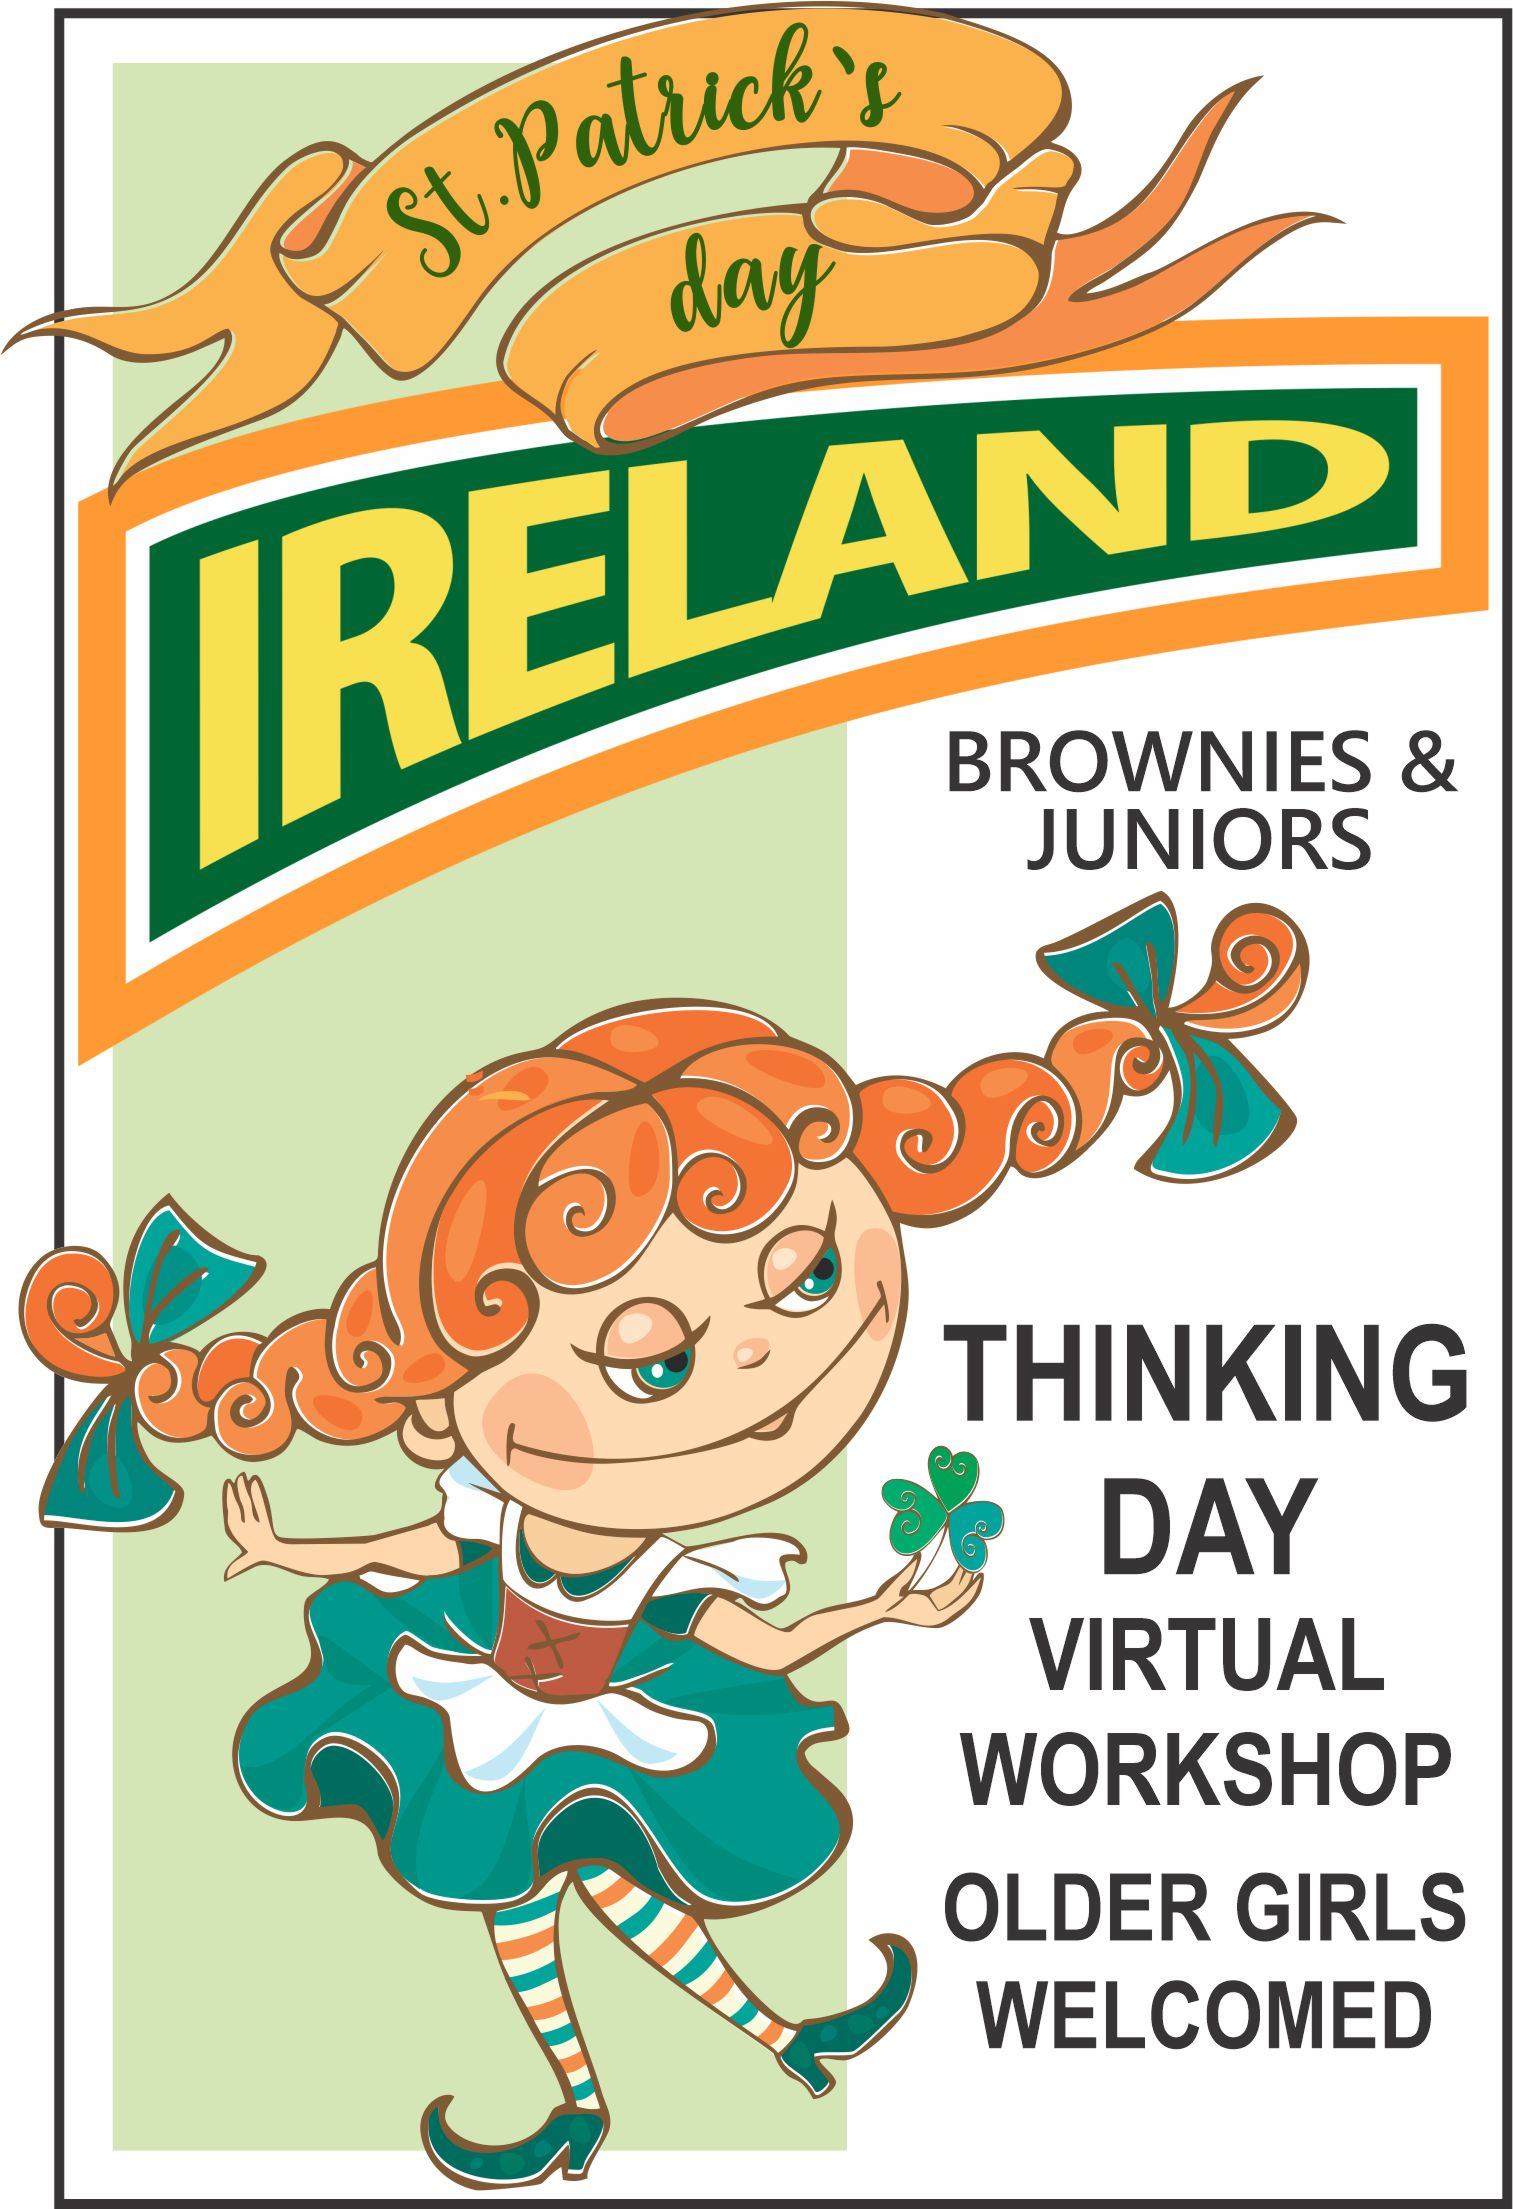 Celebrate Thinking Day and St. Patrick's Day! Learn about Celtic knots, food, traditions, step dancing, and so much more! #makingfriends #ireland #stpatricksday #brownies #daisies #thinkingday #celticknots #traditions #stepdancing #girlscouts #gsfunpatch #funpatches via @gsleader411